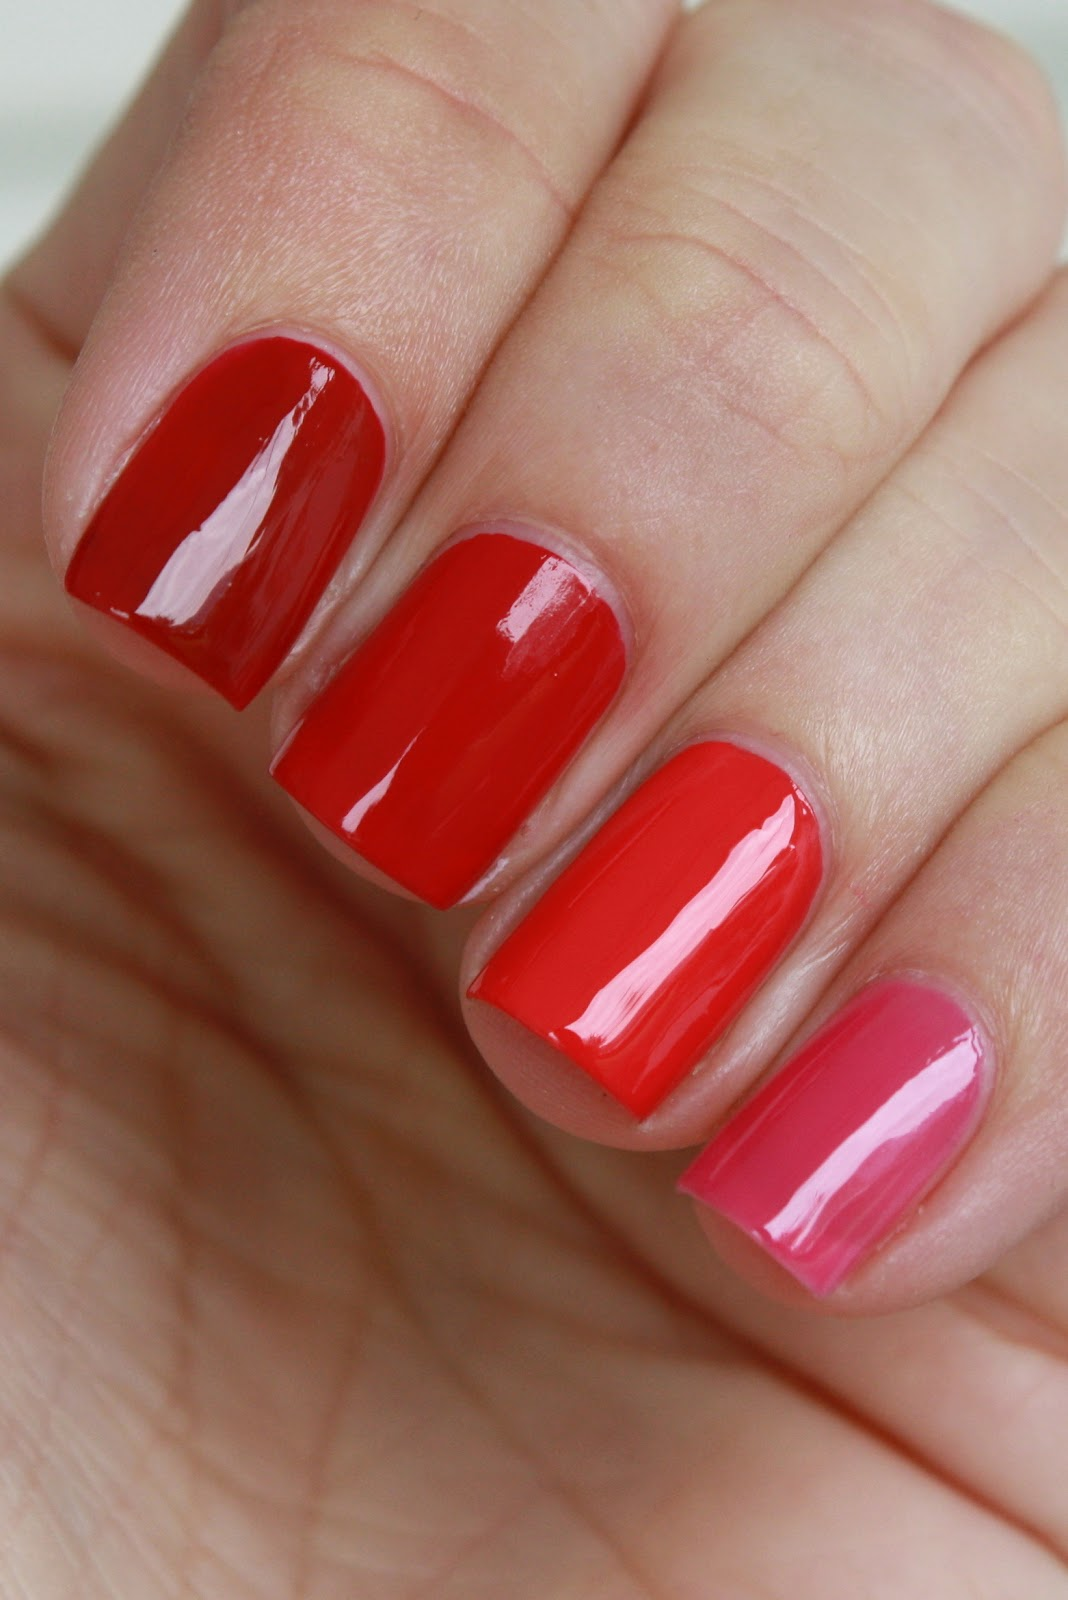 ... Revlon Valentine, it's a lovely red jelly that builds opacity quickly, this is 2 coats. On my middle finger I'm wearing Revlon Cherries in the Snow, ...